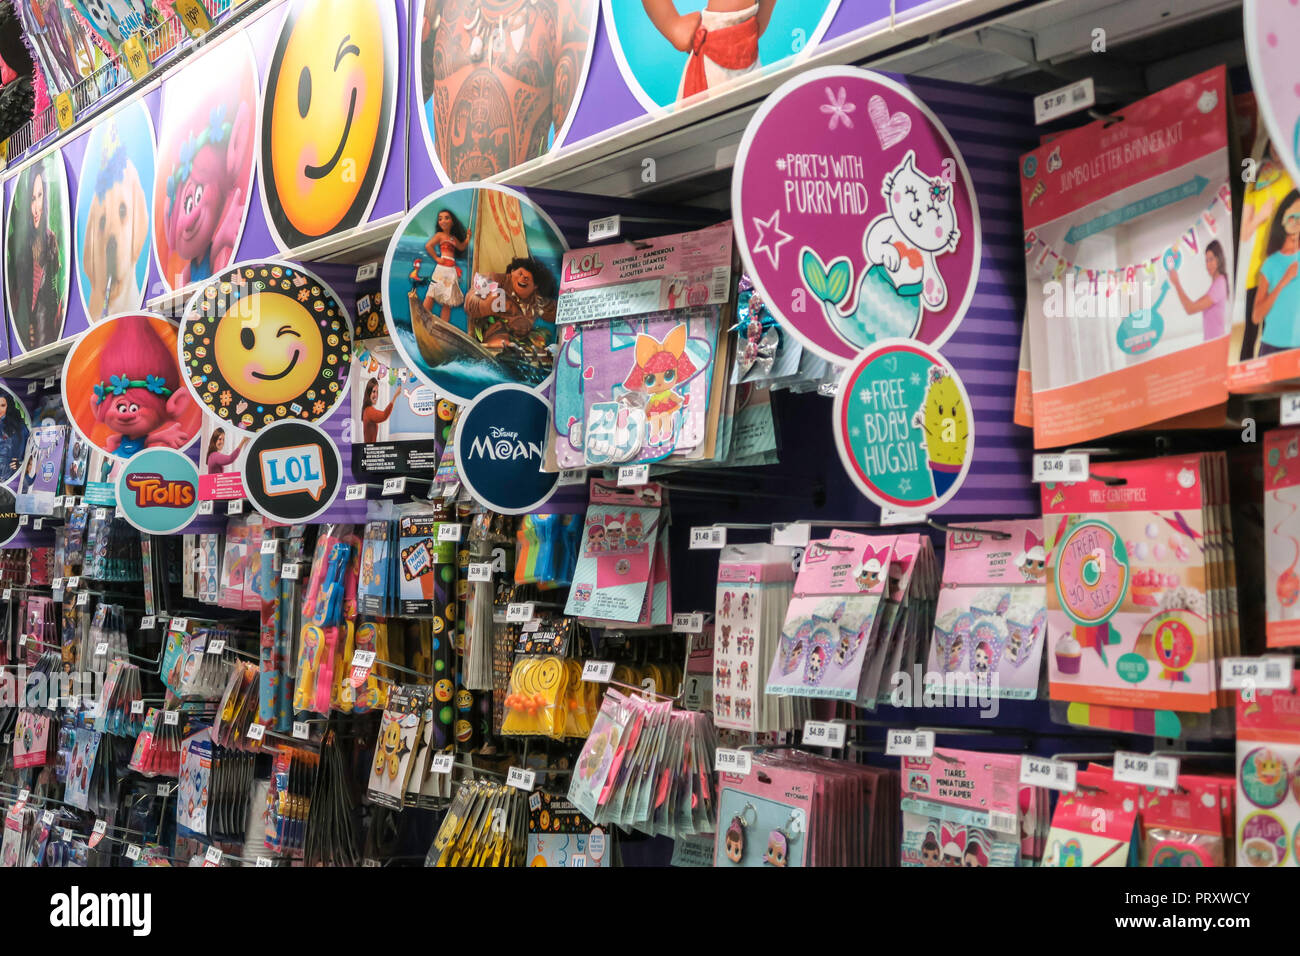 Party Supplies Store Stock Photos & Party Supplies Store Stock